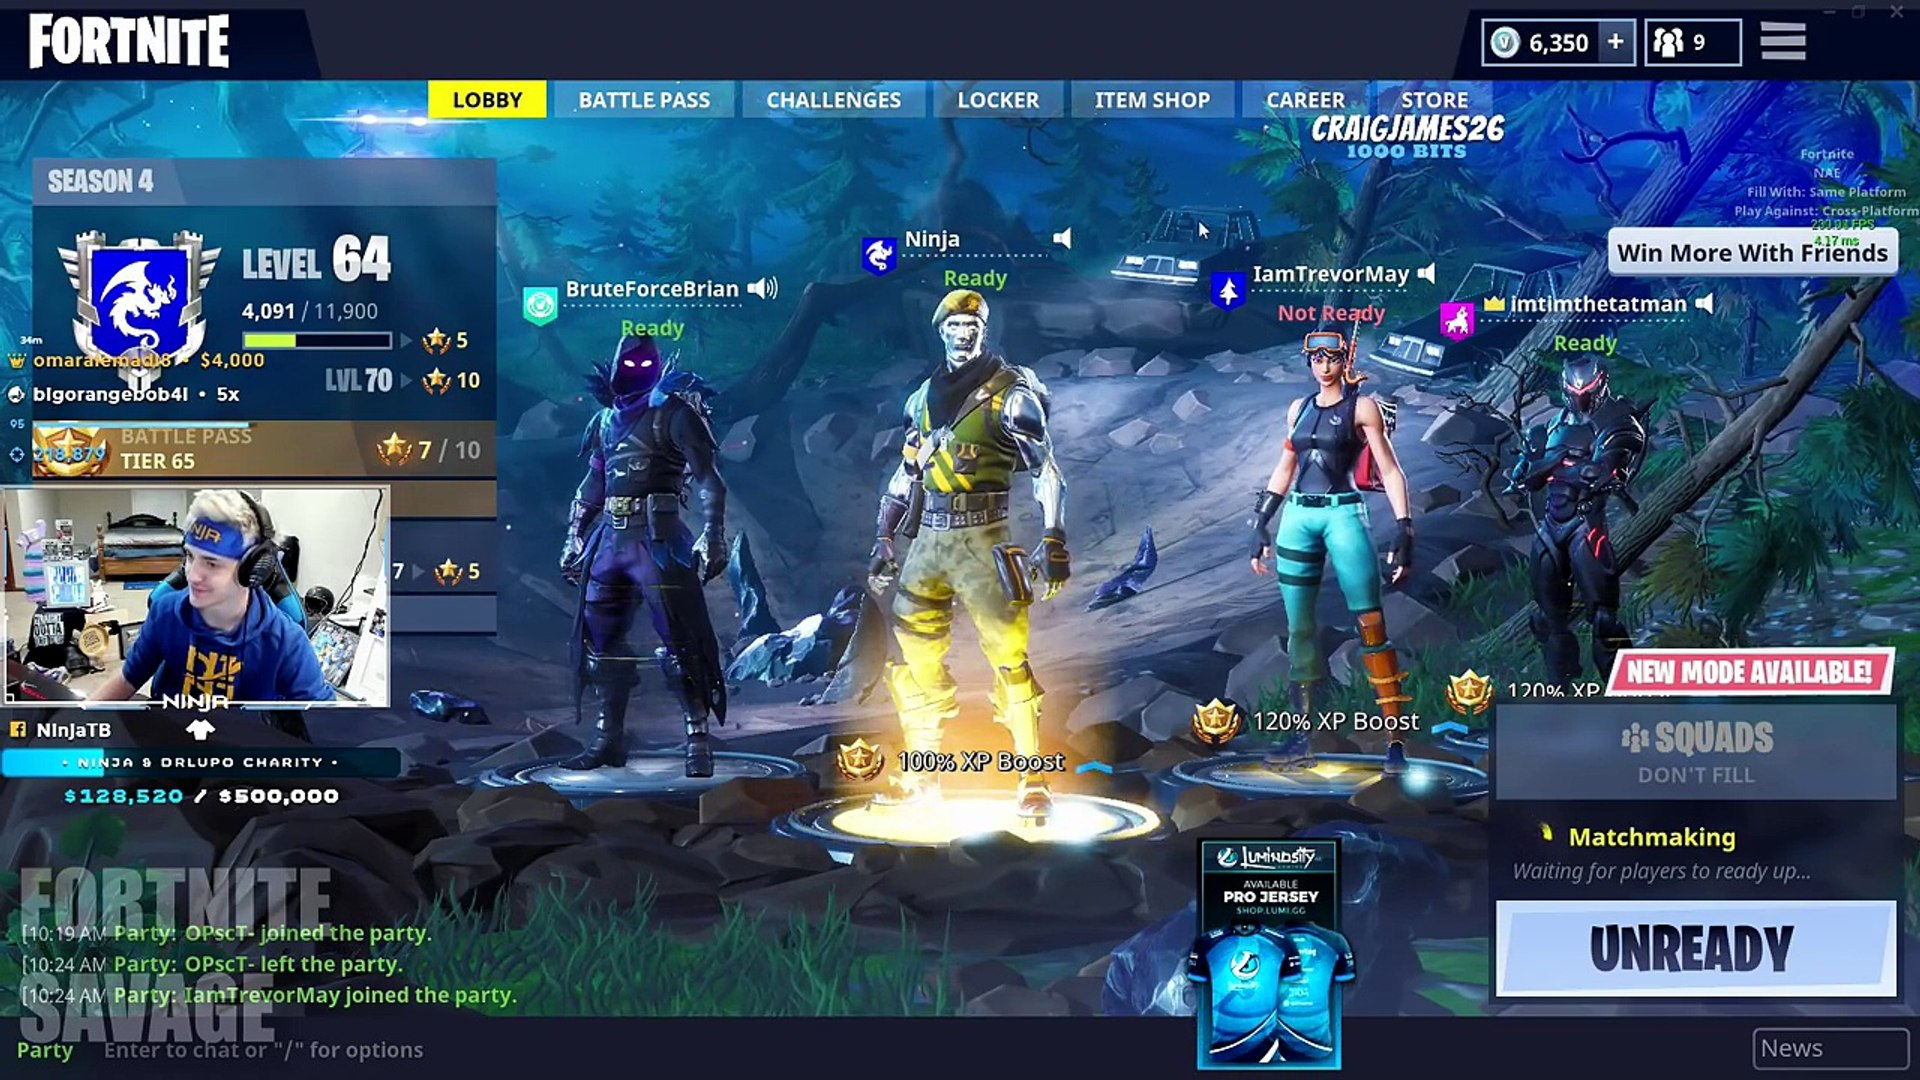 Ninja Disappoints 11 Year Old Kid By Rejecting Friend Request Fortnite Top Twitch Moments Dailymotion Video